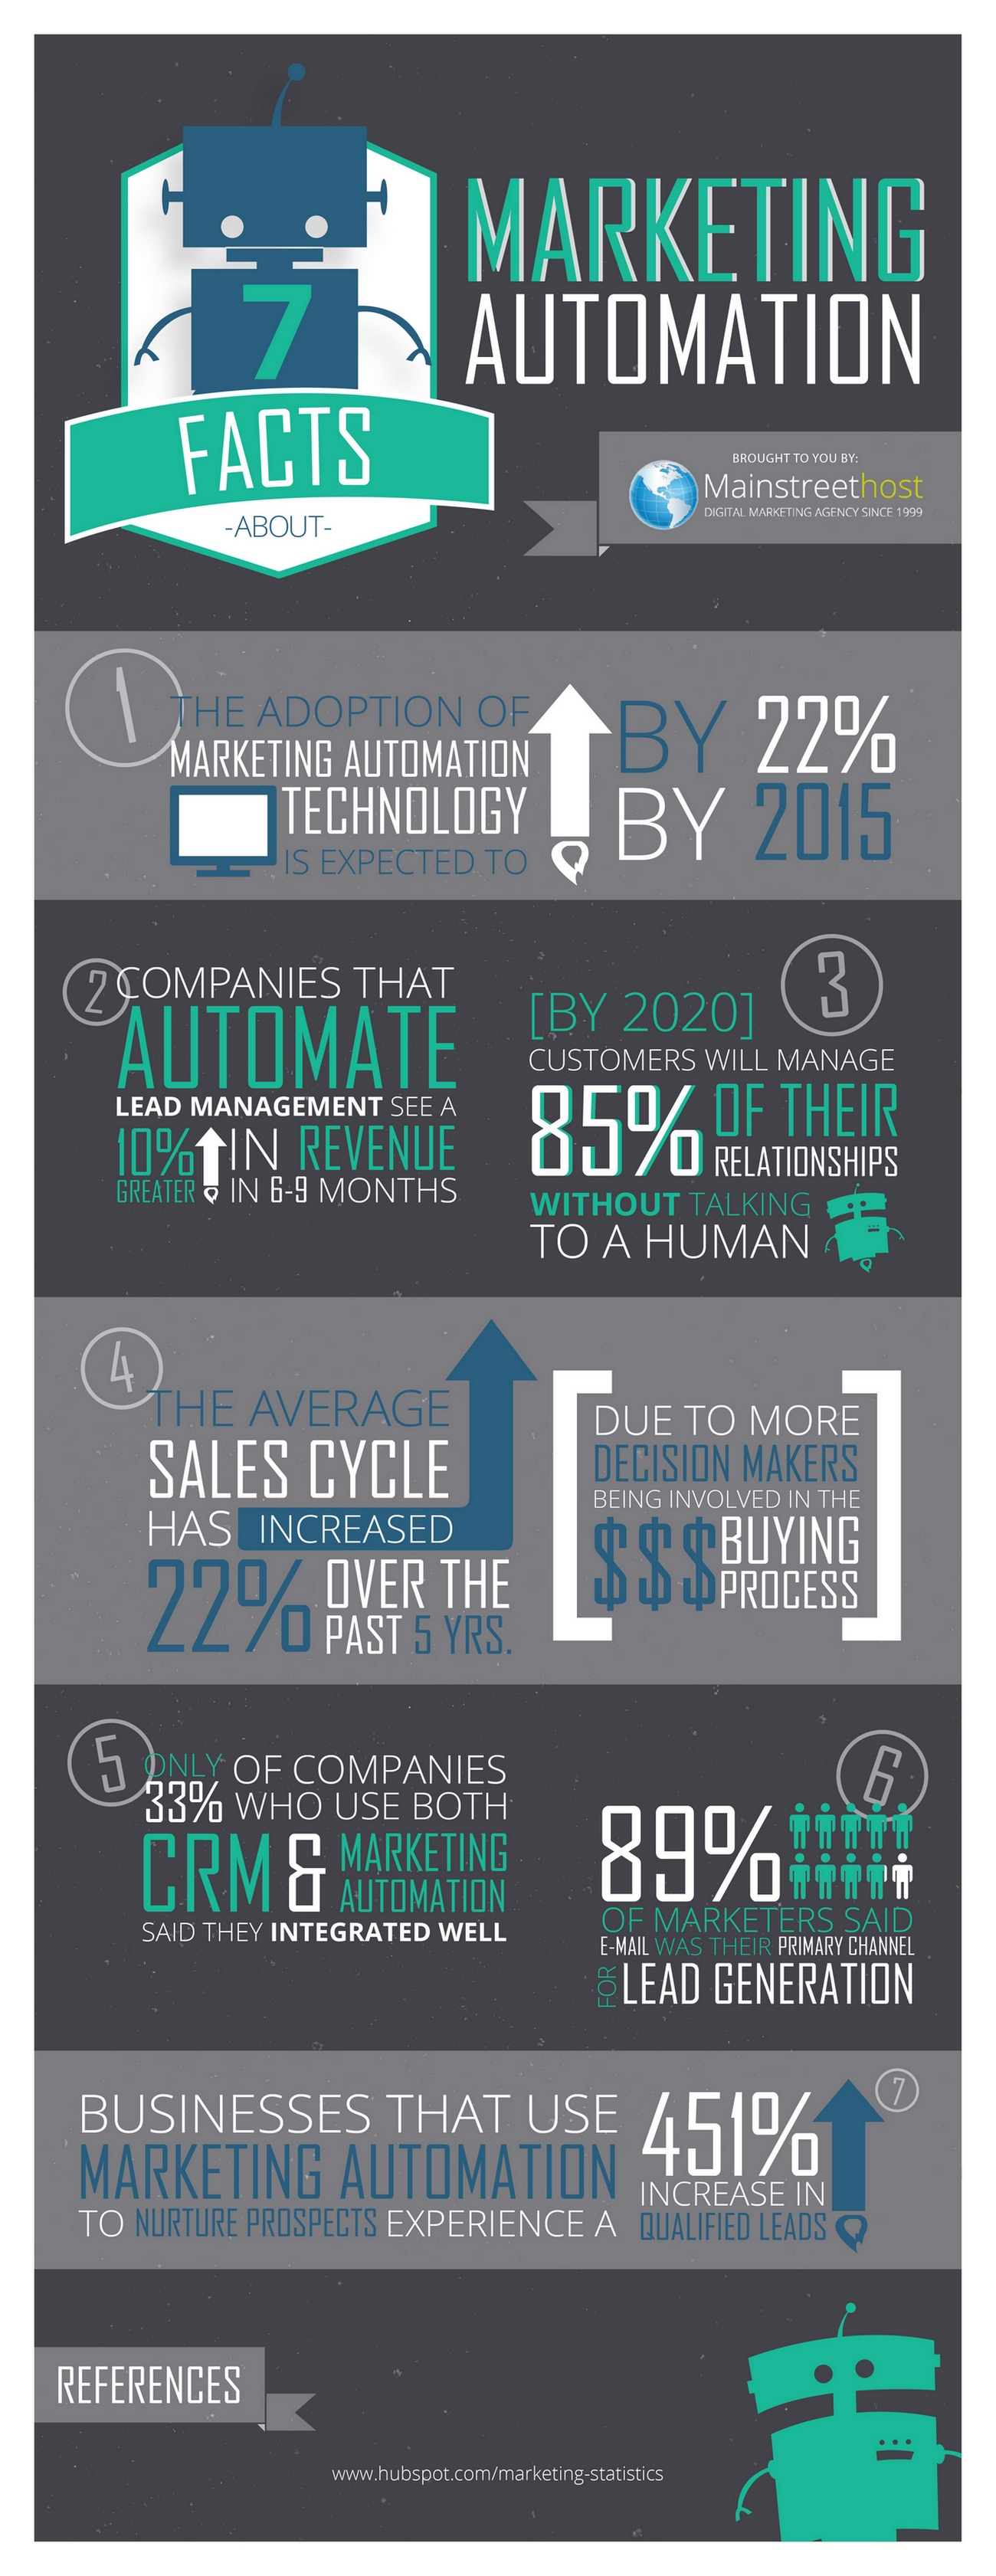 mktg-automation-infographic-final-07.jpg